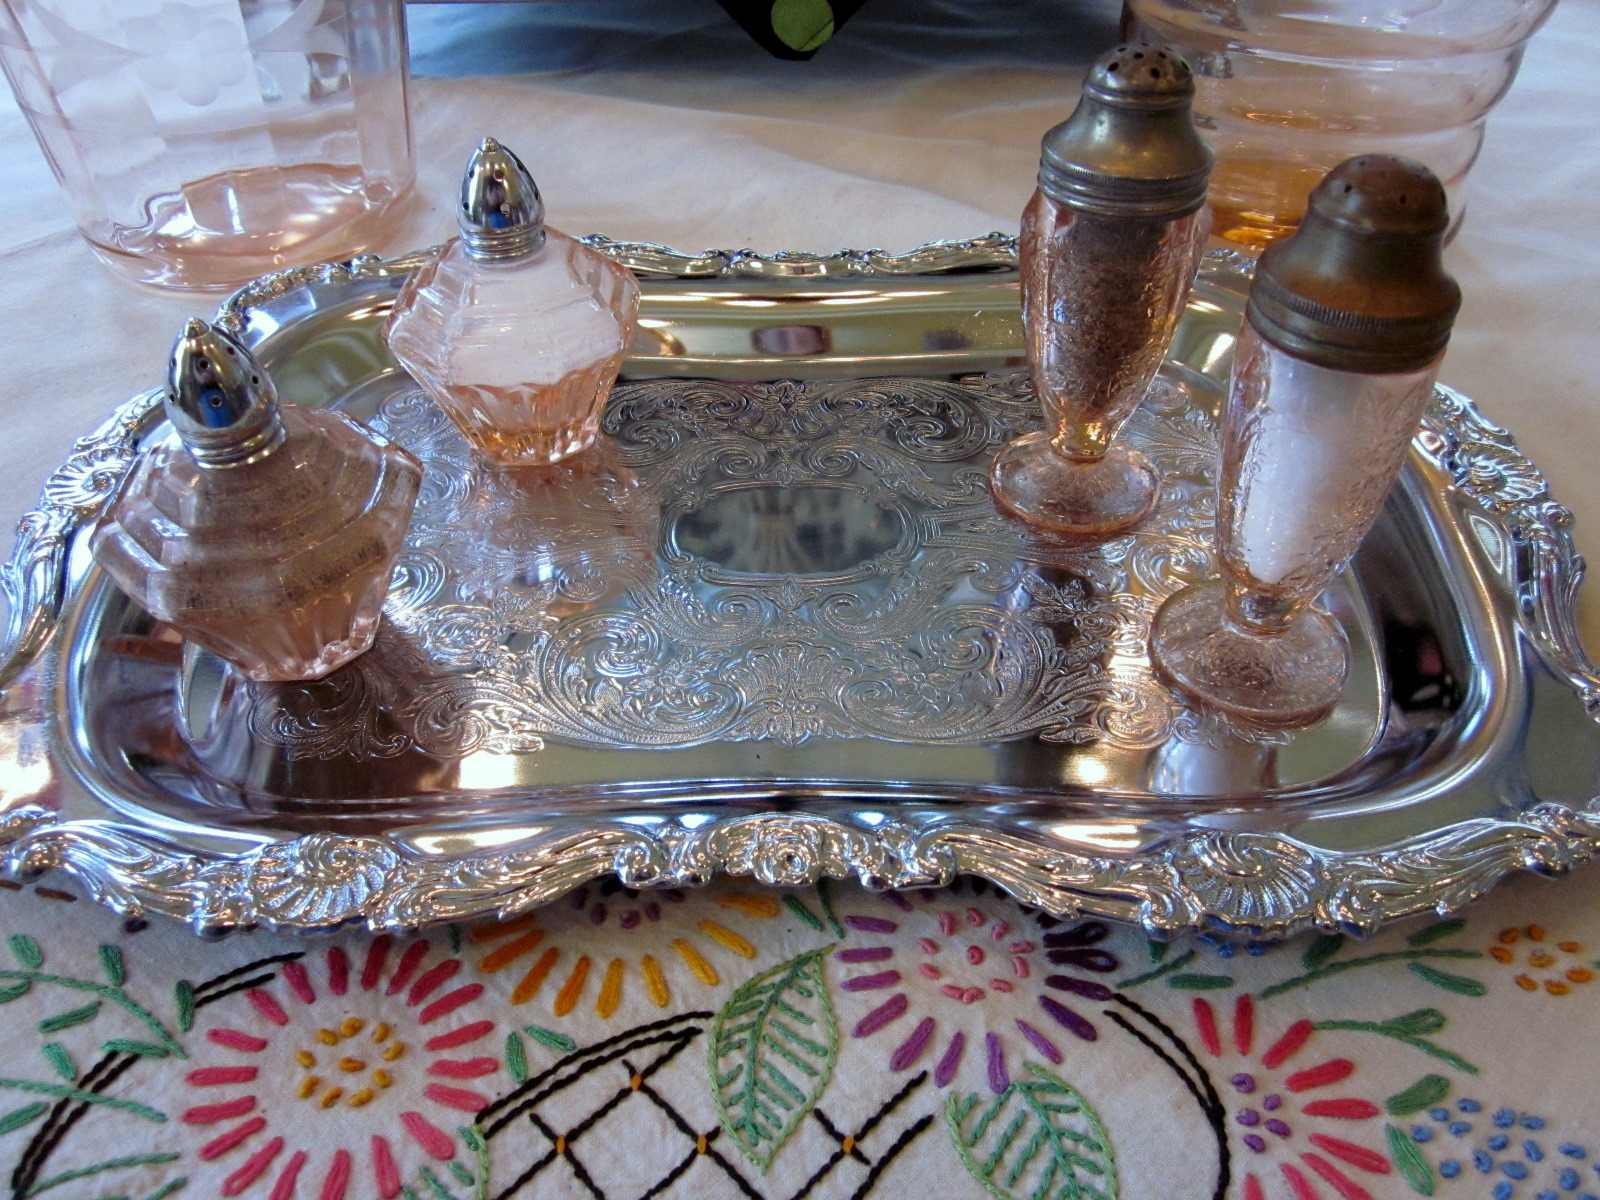 The silver tray with the pink